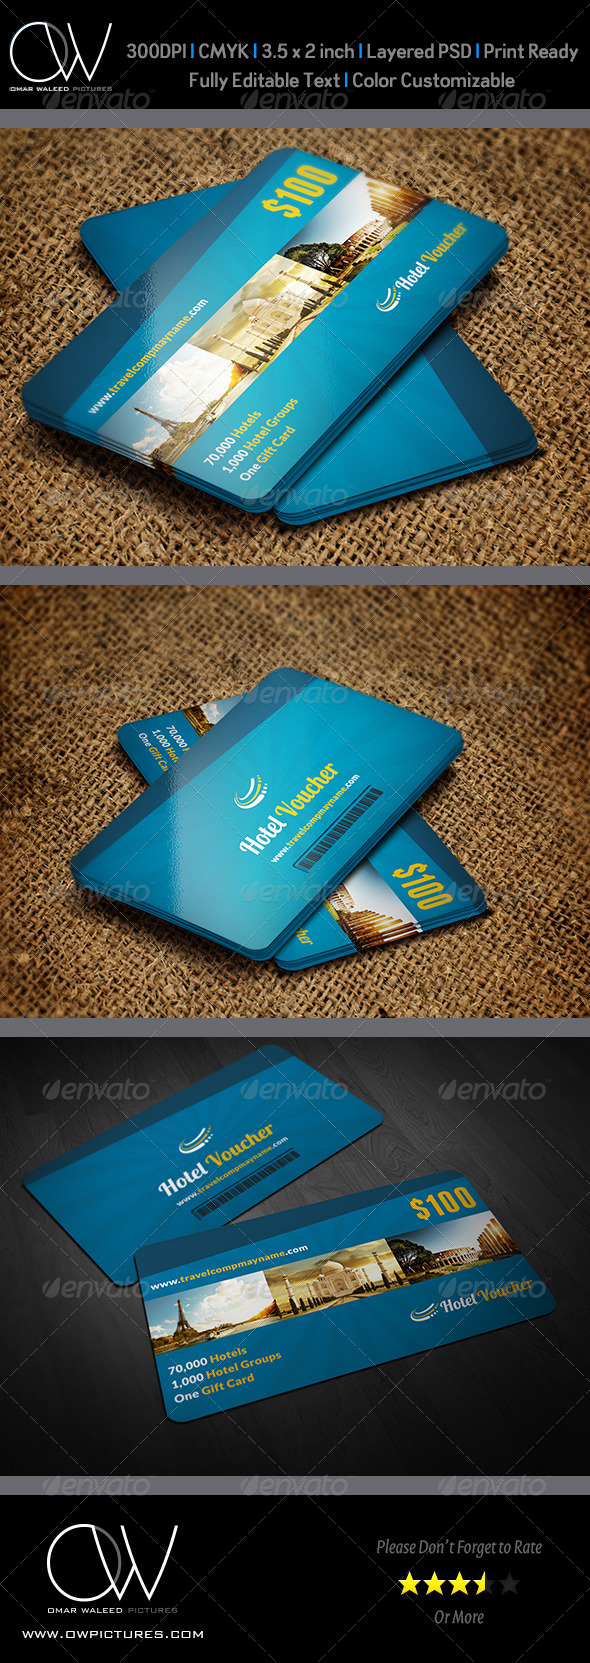 Hotel Gift Voucher Card Vol 7 - Cards & Invites Print Templates